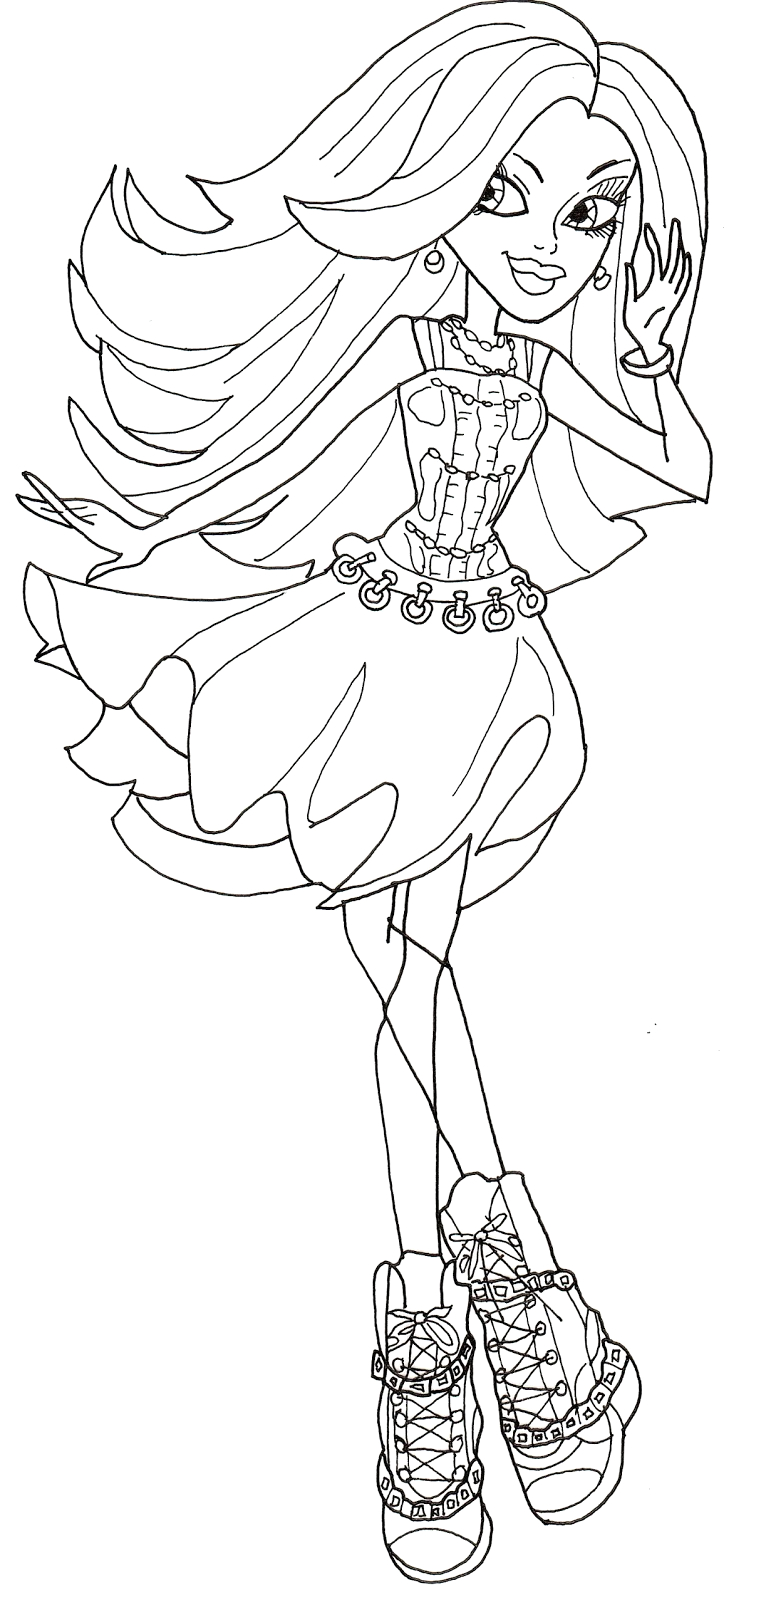 spectra coloring page